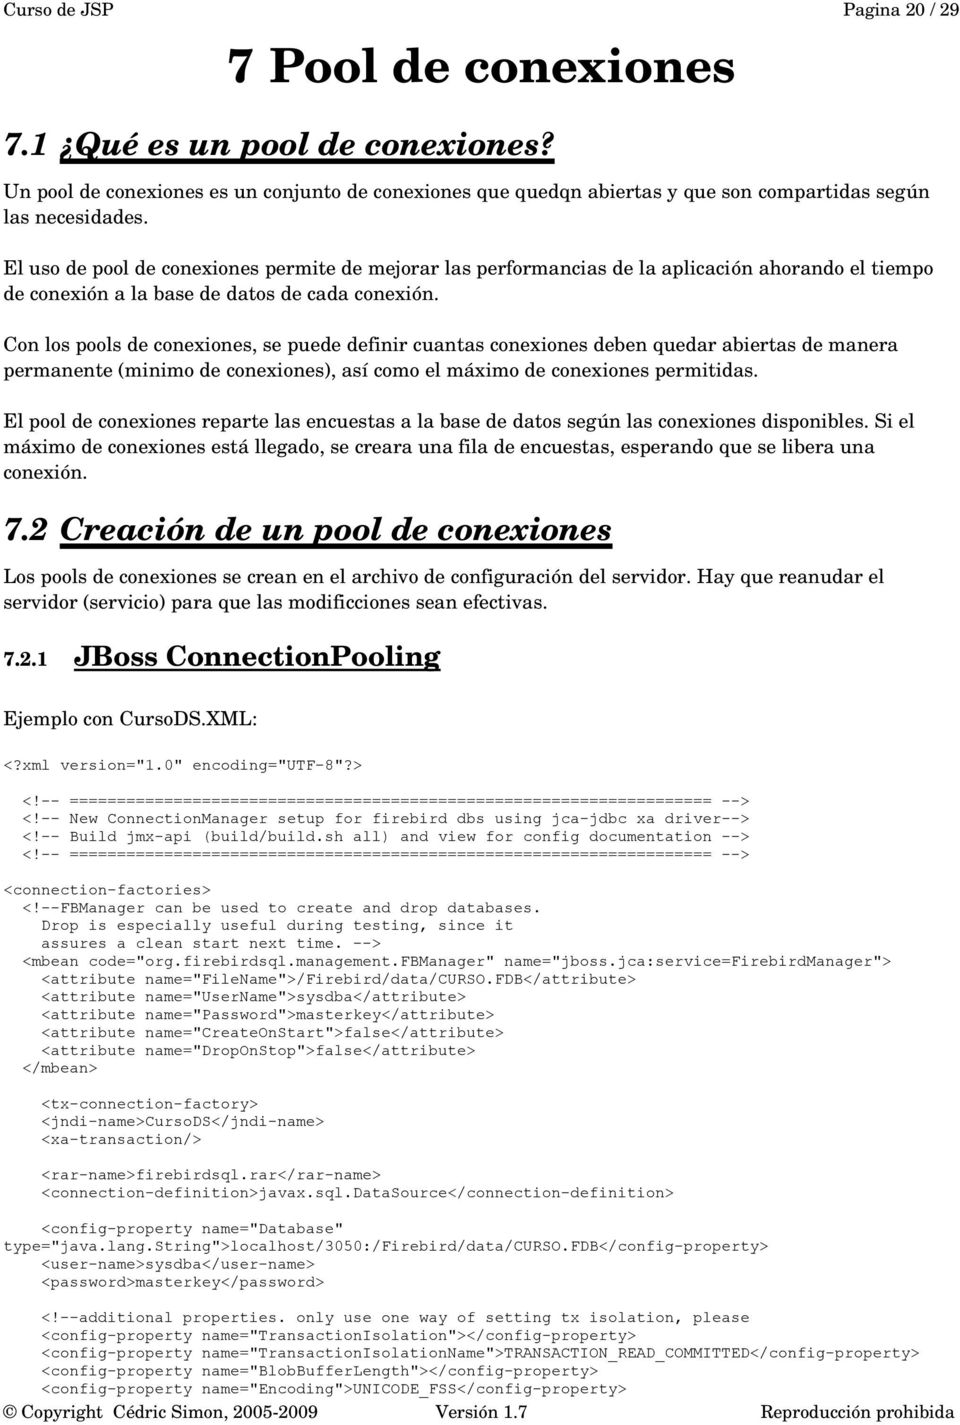 Curso de Java Server Pages Nivel Avanzado Manual del alumno <JSP> - PDF